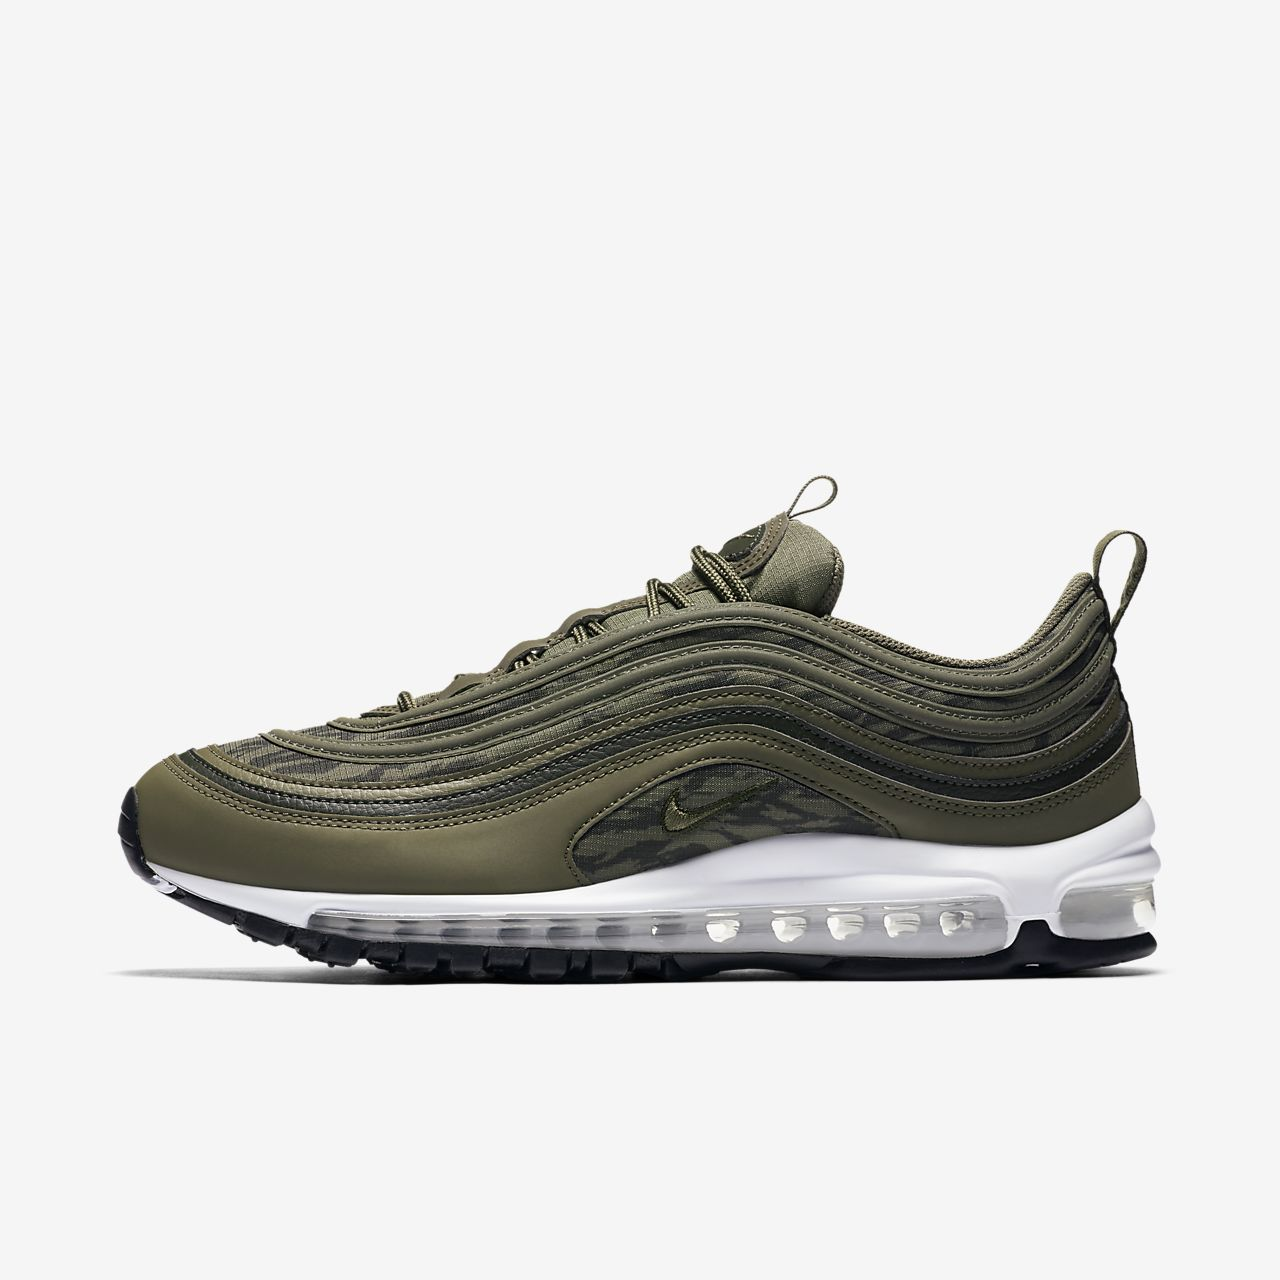 Air Max 97 17 Olive Ultra Premium Chaussures E Nike 2DypopU